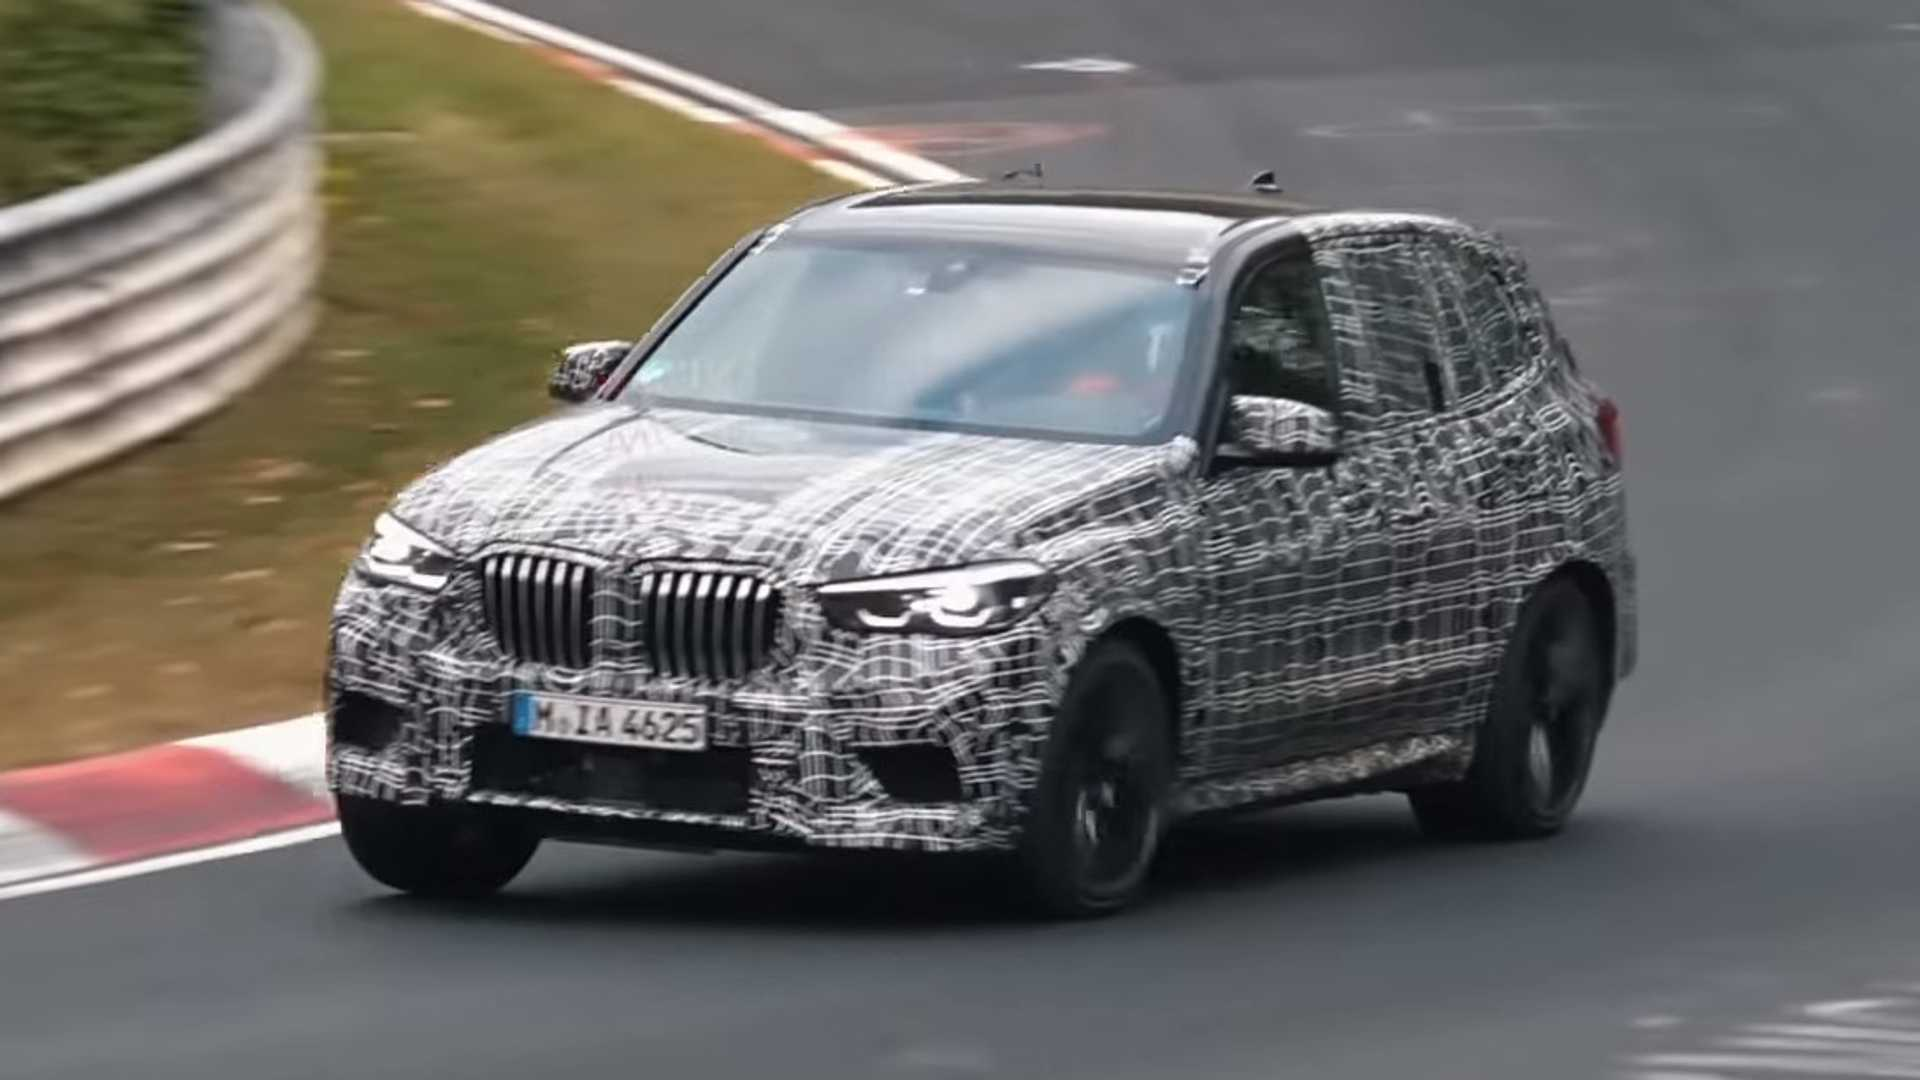 67 All New Bmw X5M 2020 Rumors